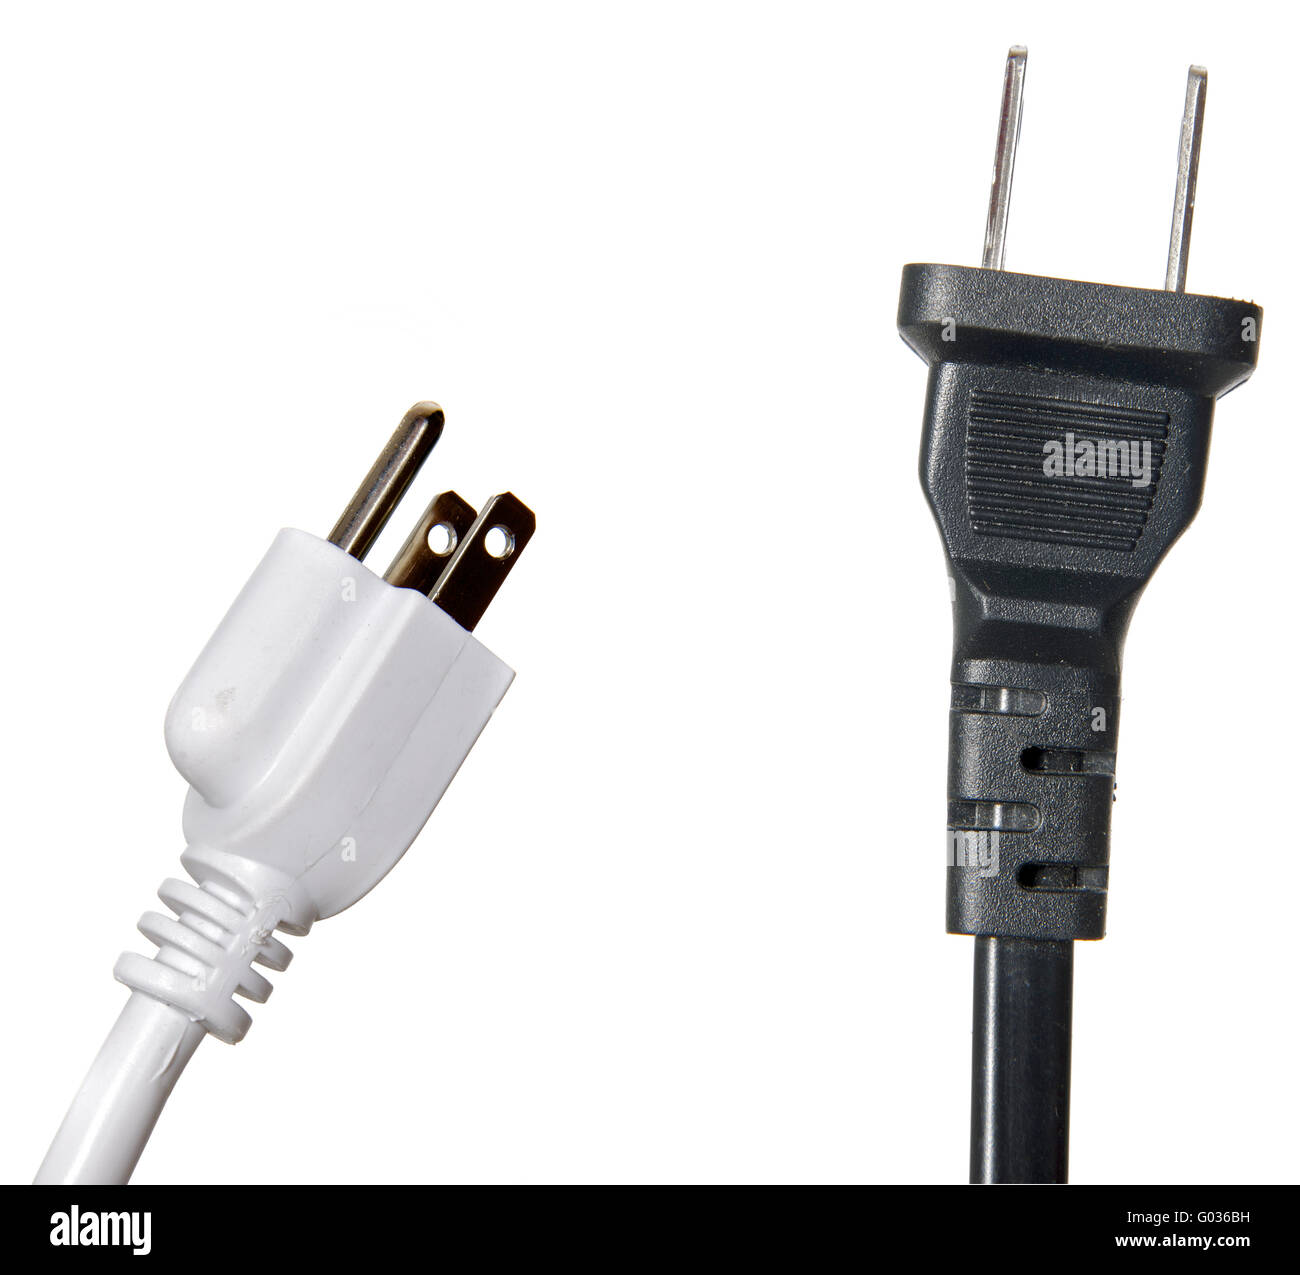 110 volt three prong electrical plug stock photo 103333093 alamy